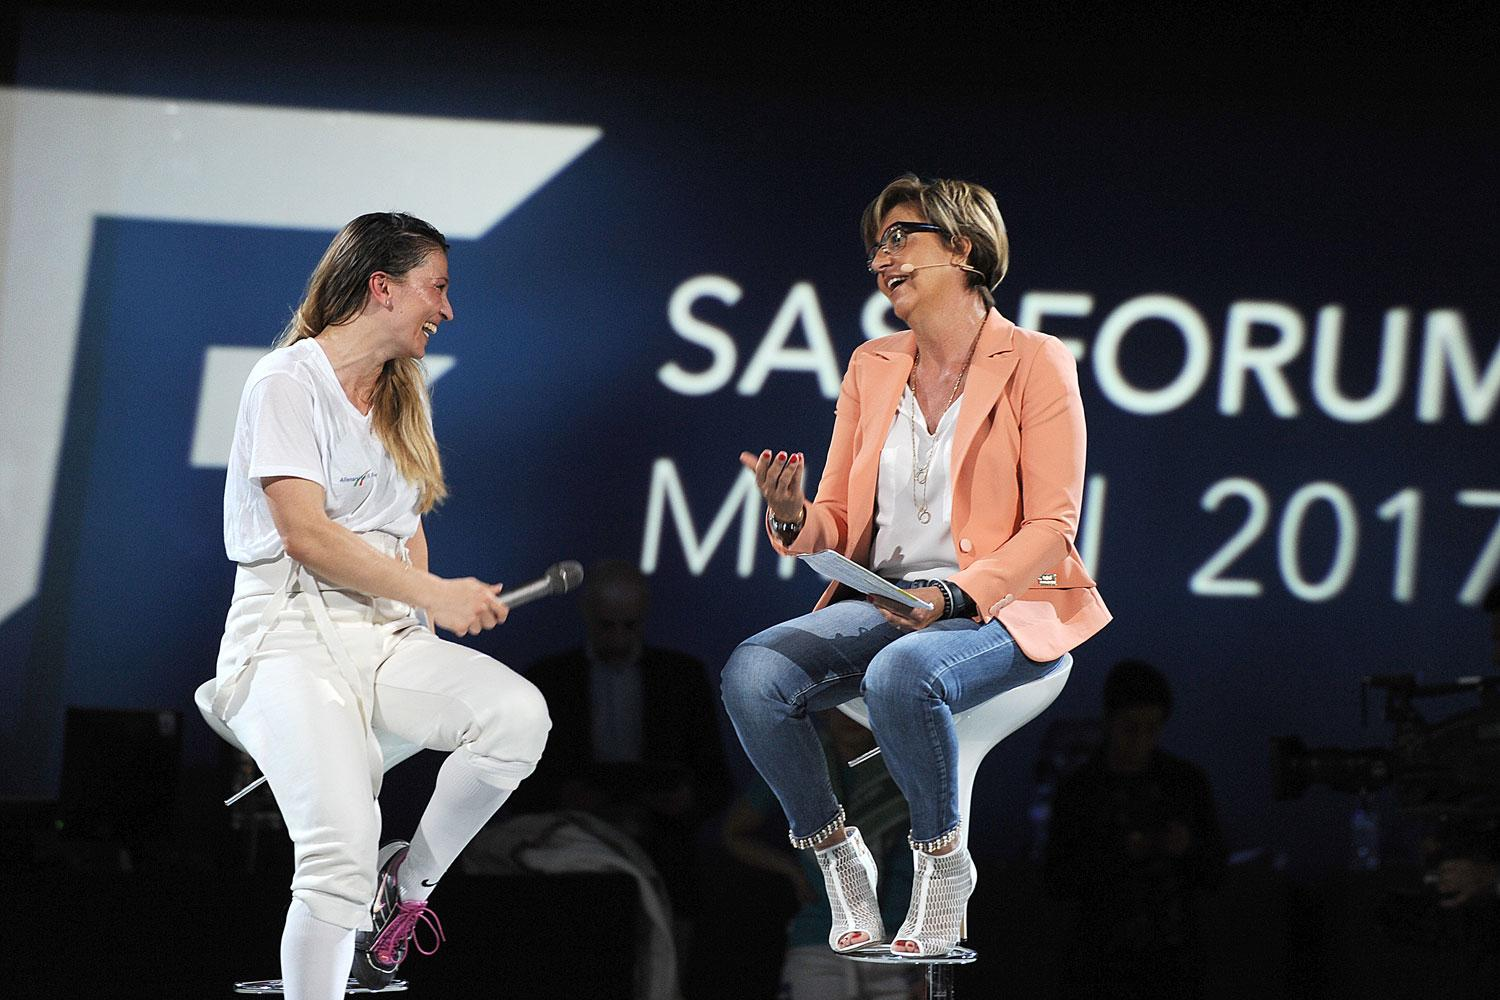 Margherita Granbassi and Emanuela Sferco at SAS Forum Milan 2017